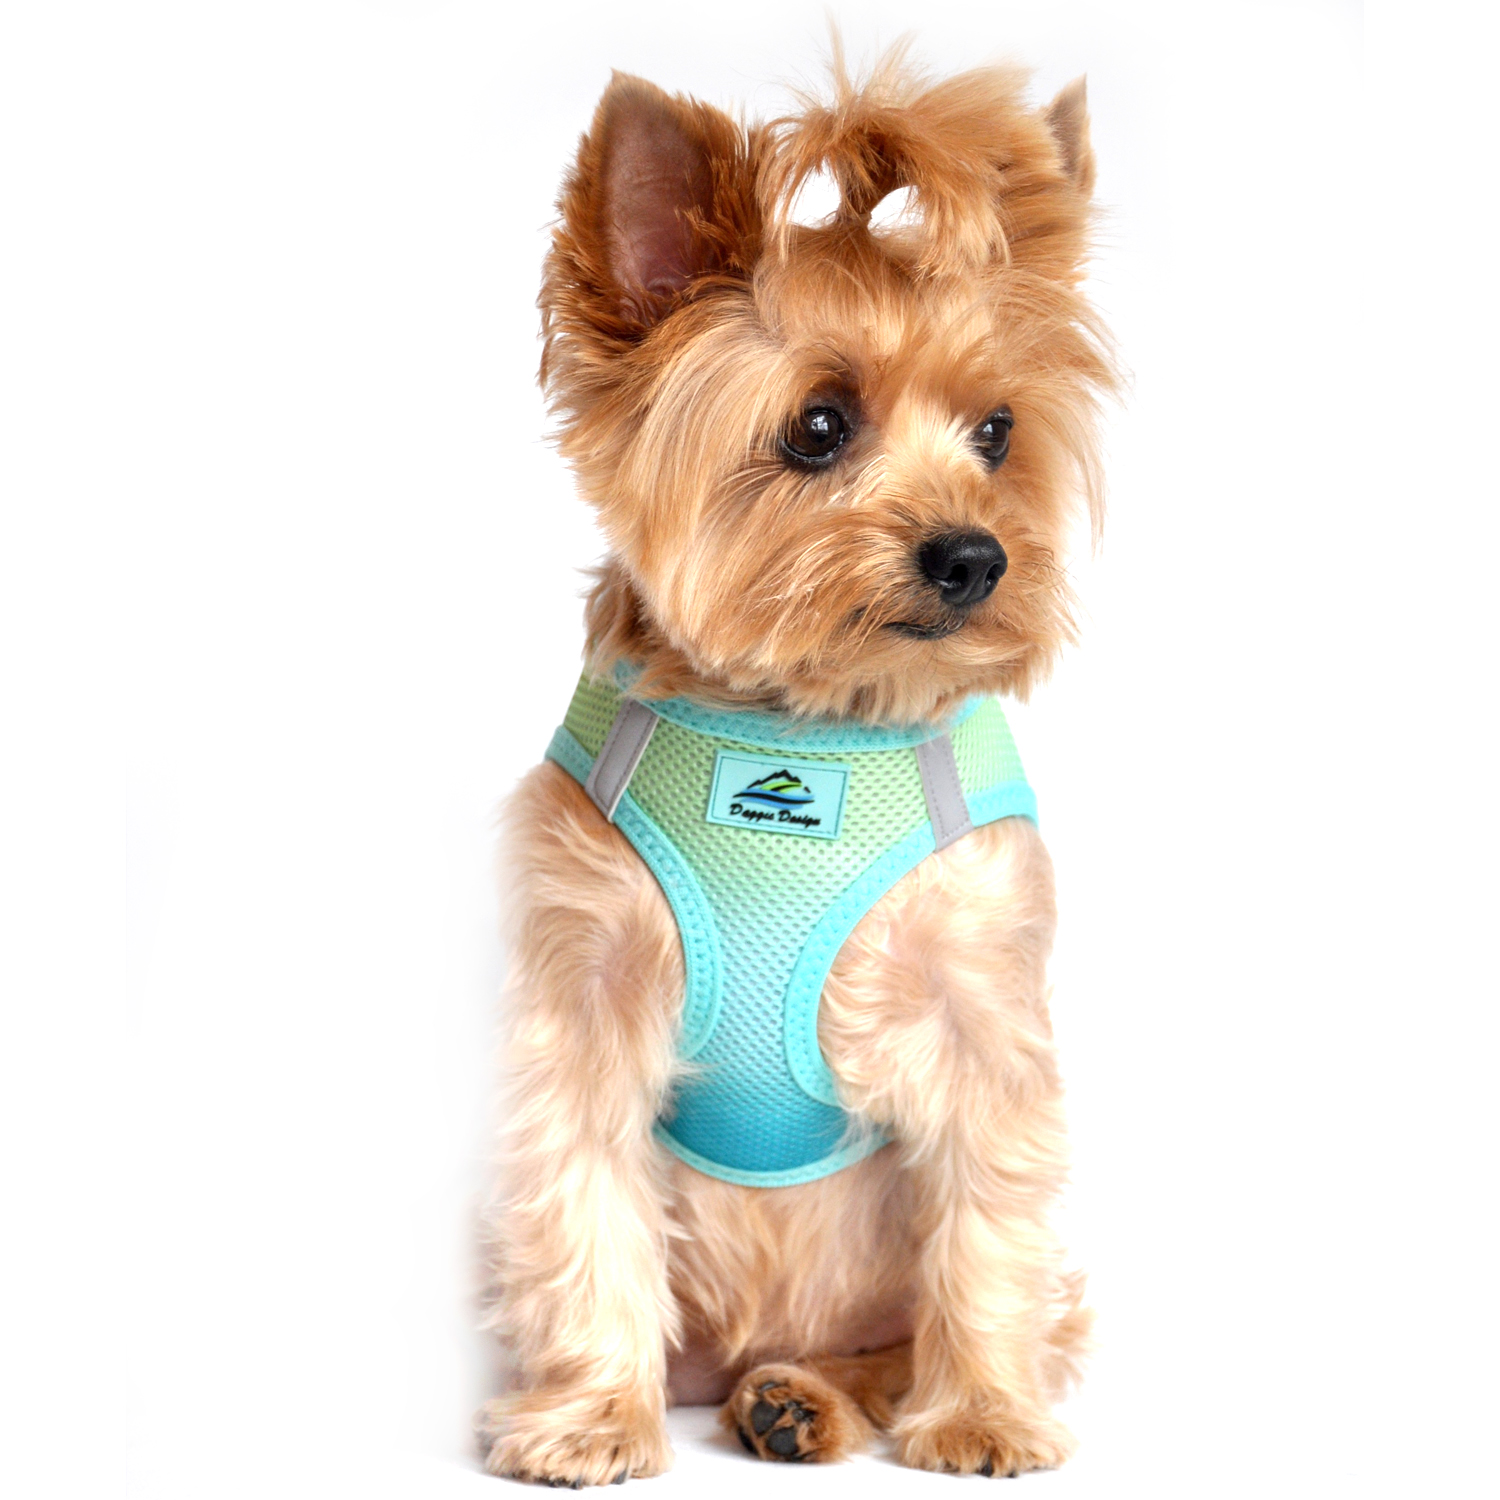 American River Choke-Free Dog Harness by Doggie Design - Aruba Blue Ombre